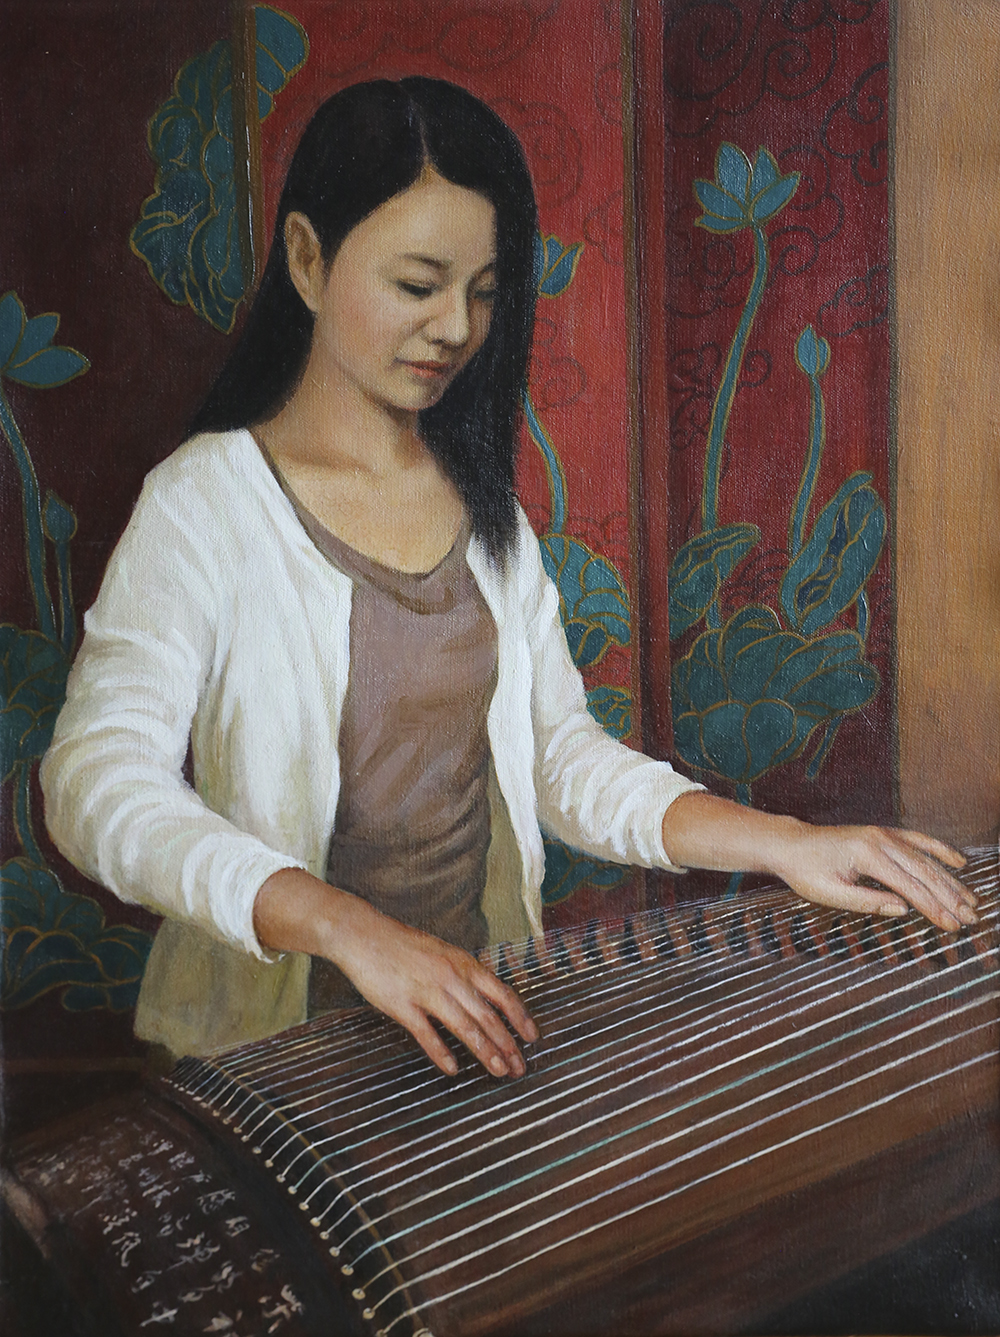 Lady playing Guzheng